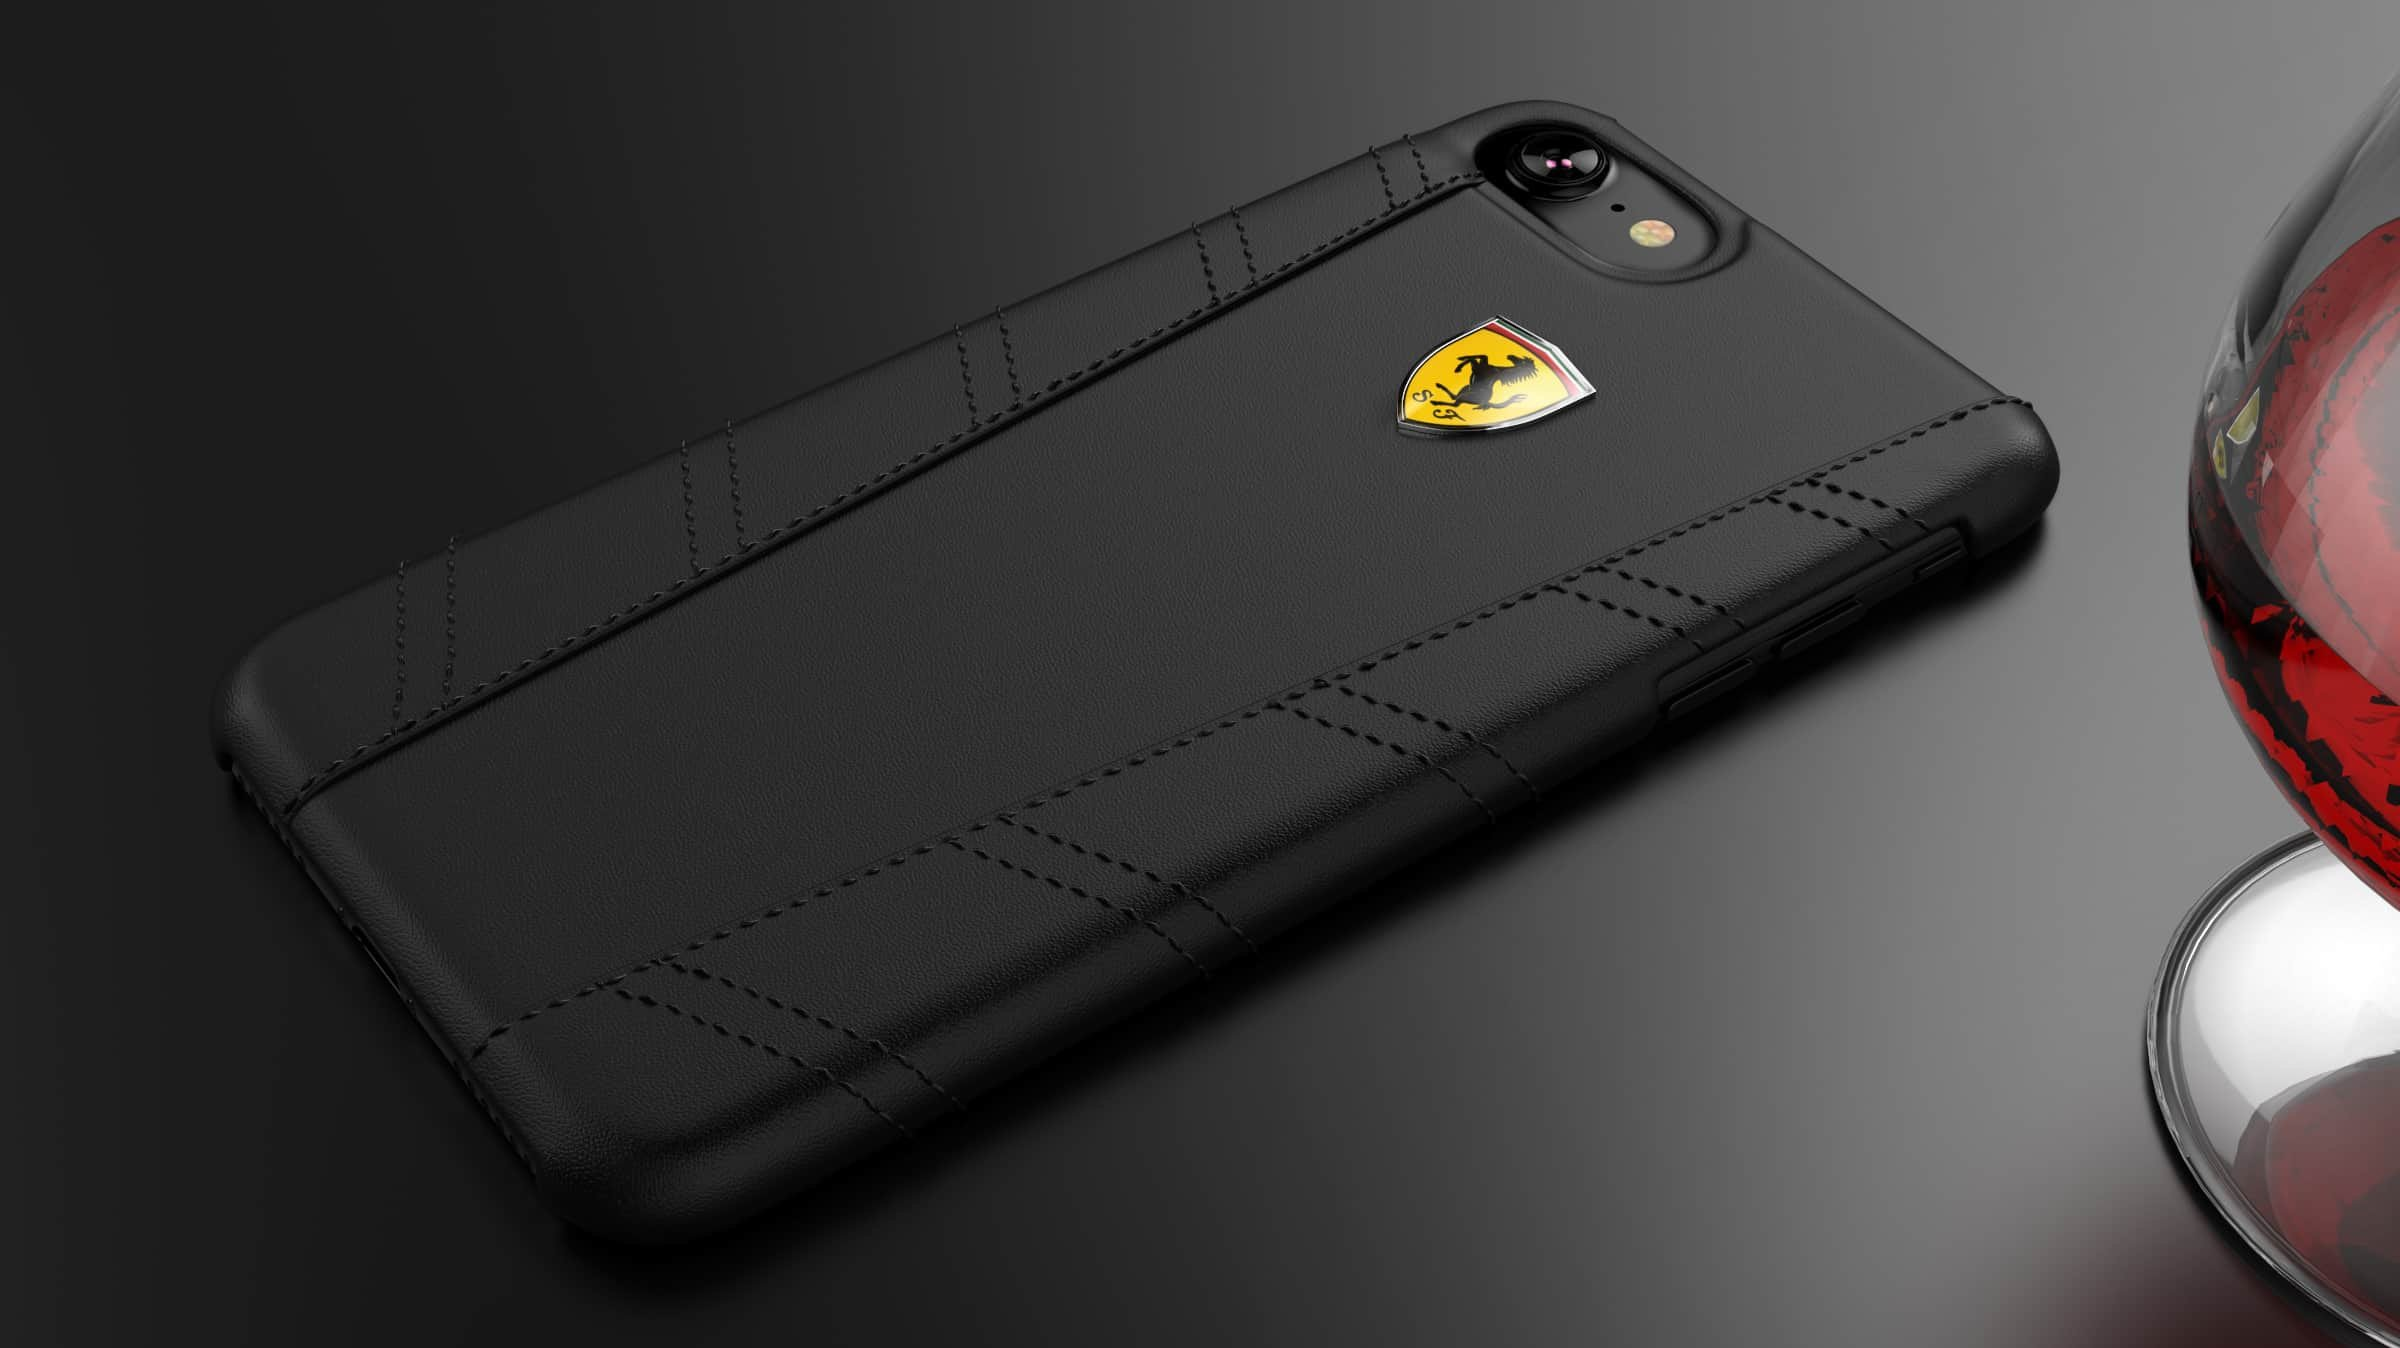 ferrari 174 apple iphone 8 plus gtr edition leather stitched